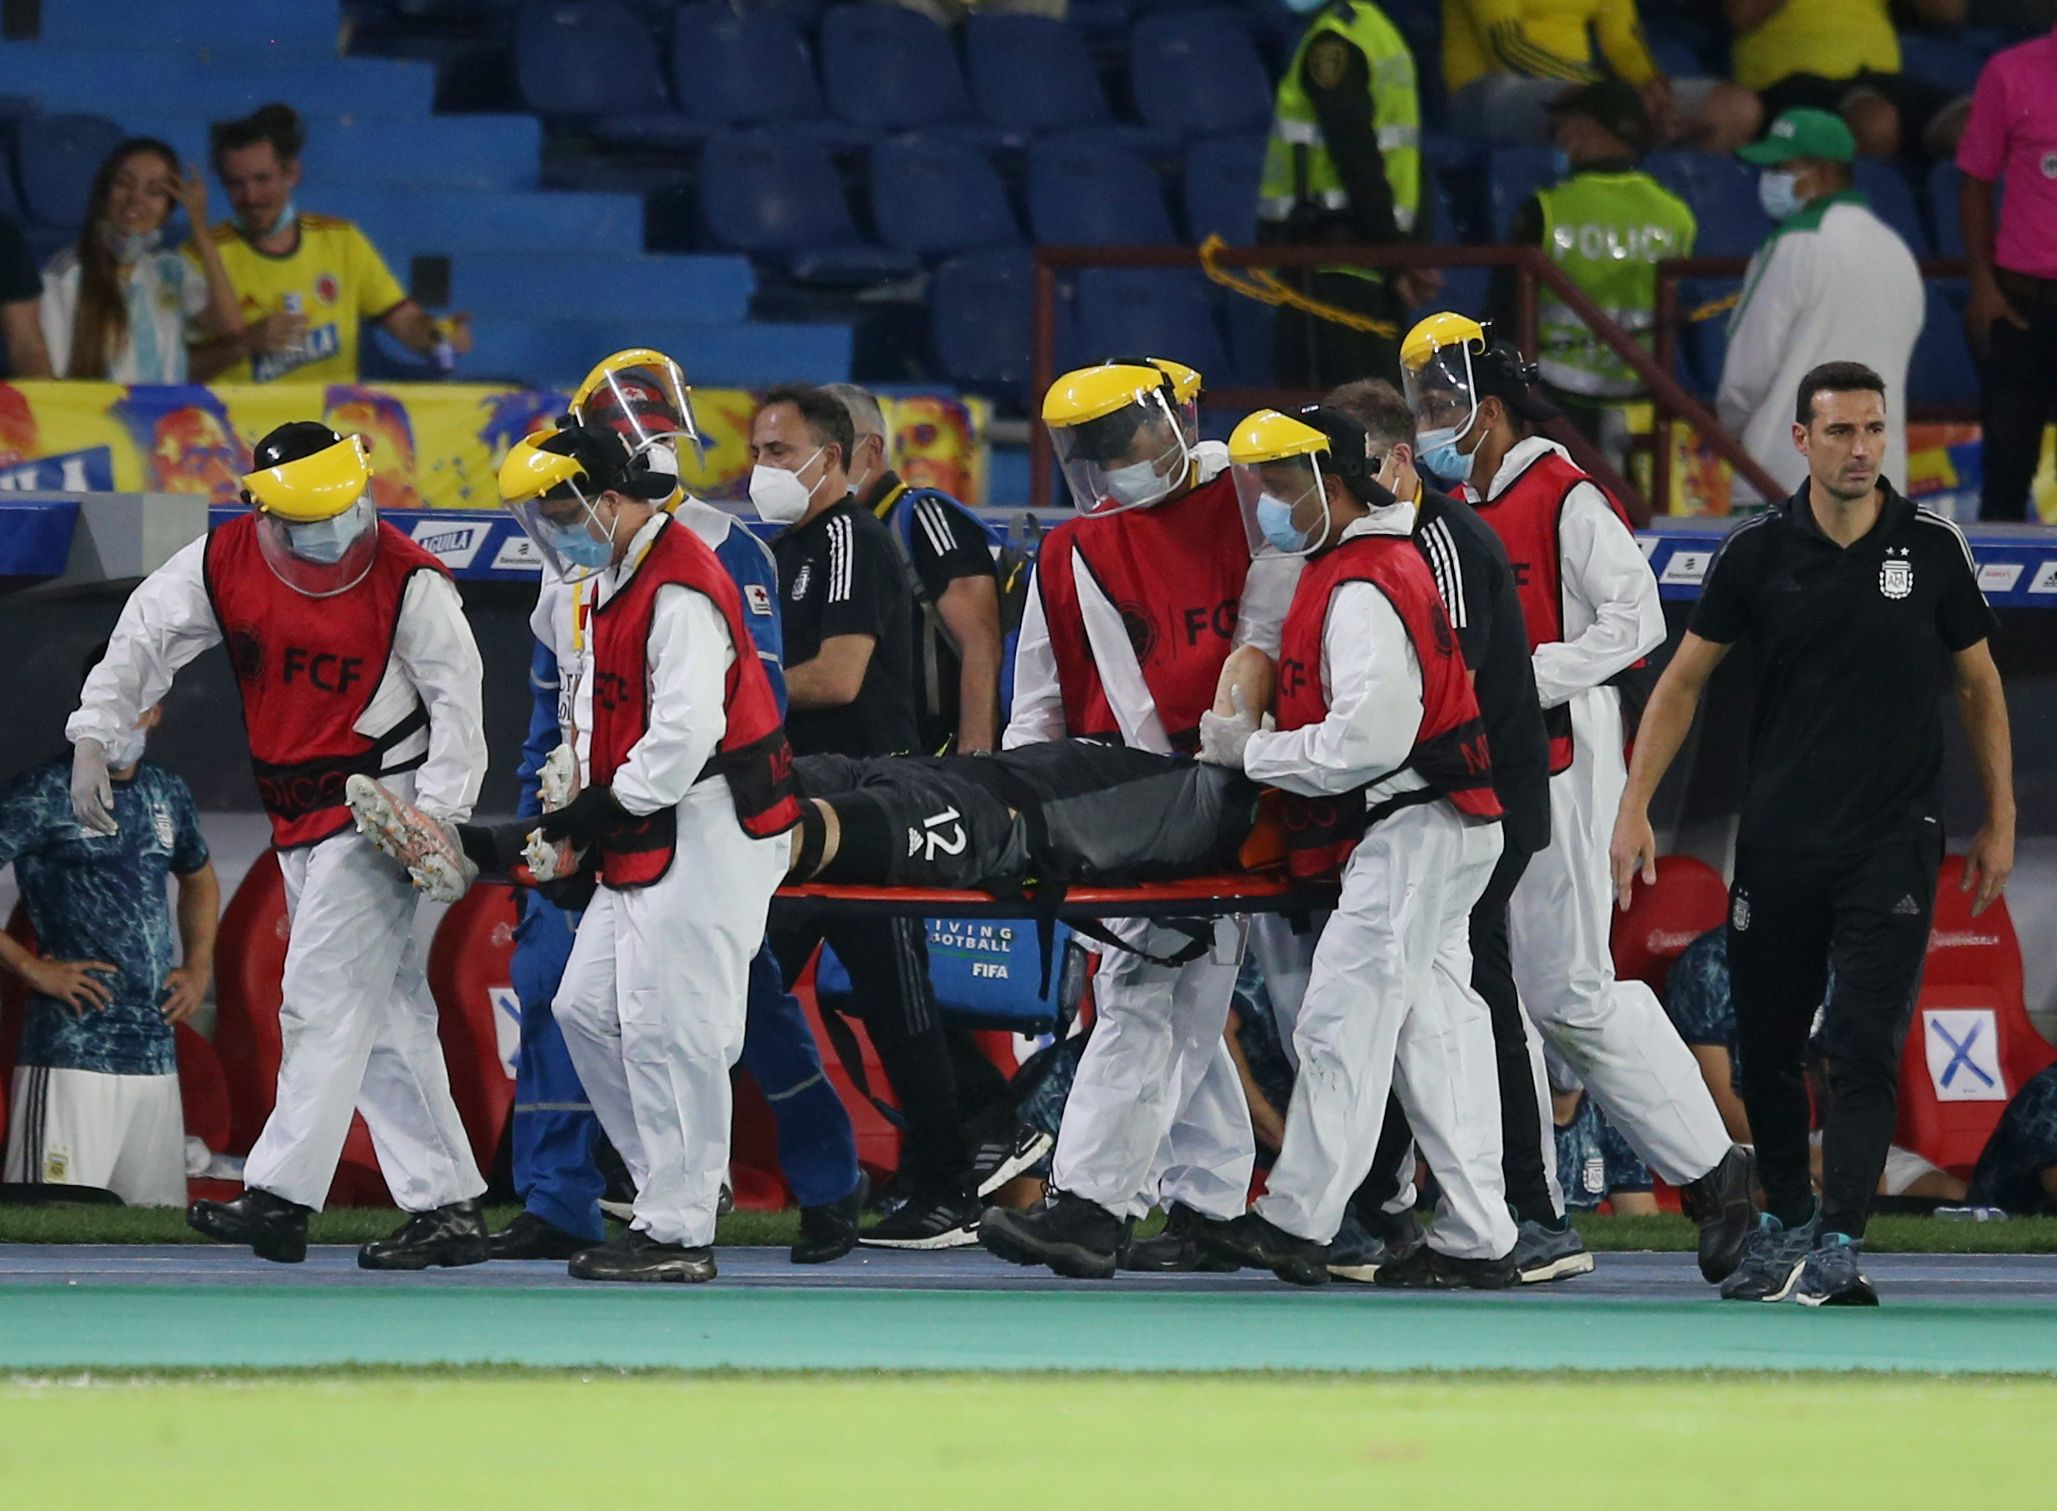 Soccer Football - World Cup - South American Qualifiers - Colombia v Argentina - Estadio Metropolitano, Barranquilla, Colombia - June 8, 2021 Argentina's Emiliano Martinez is stretchered off after sustaining an injury REUTERS/Luisa Gonzalez